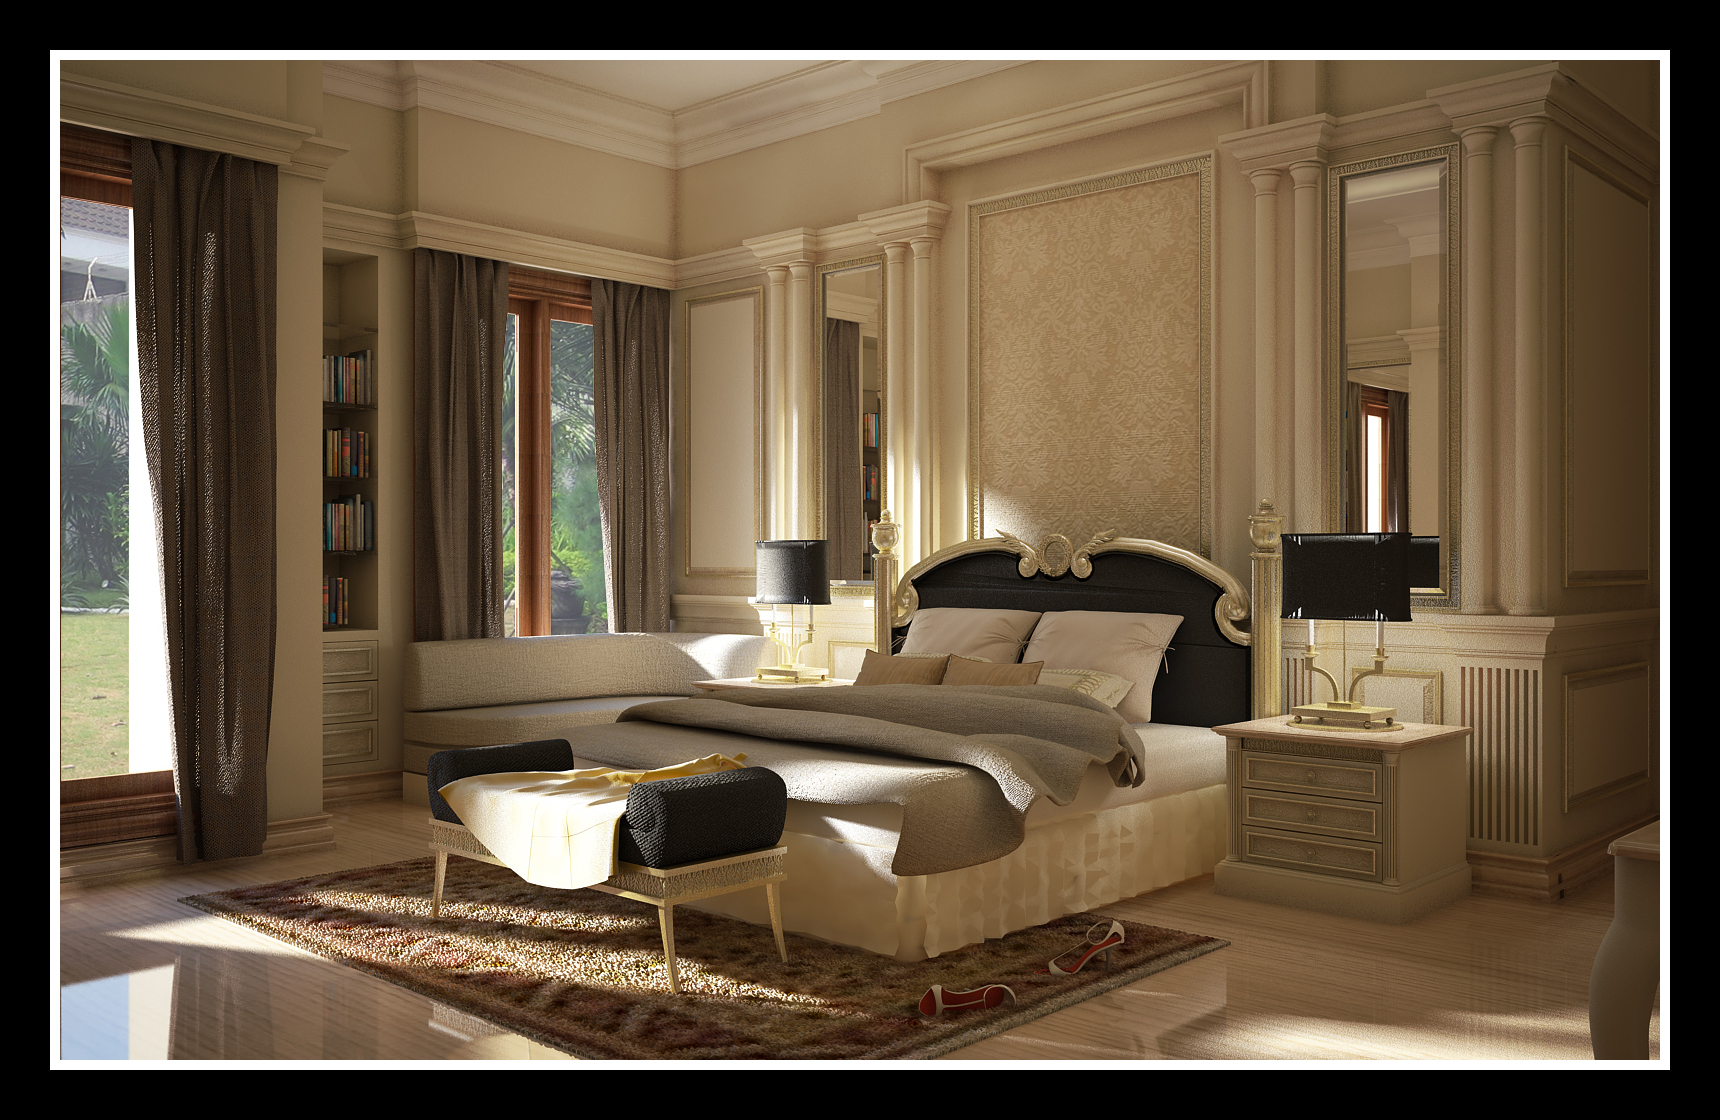 Interior design 3d home designer for Bedroom designs interior